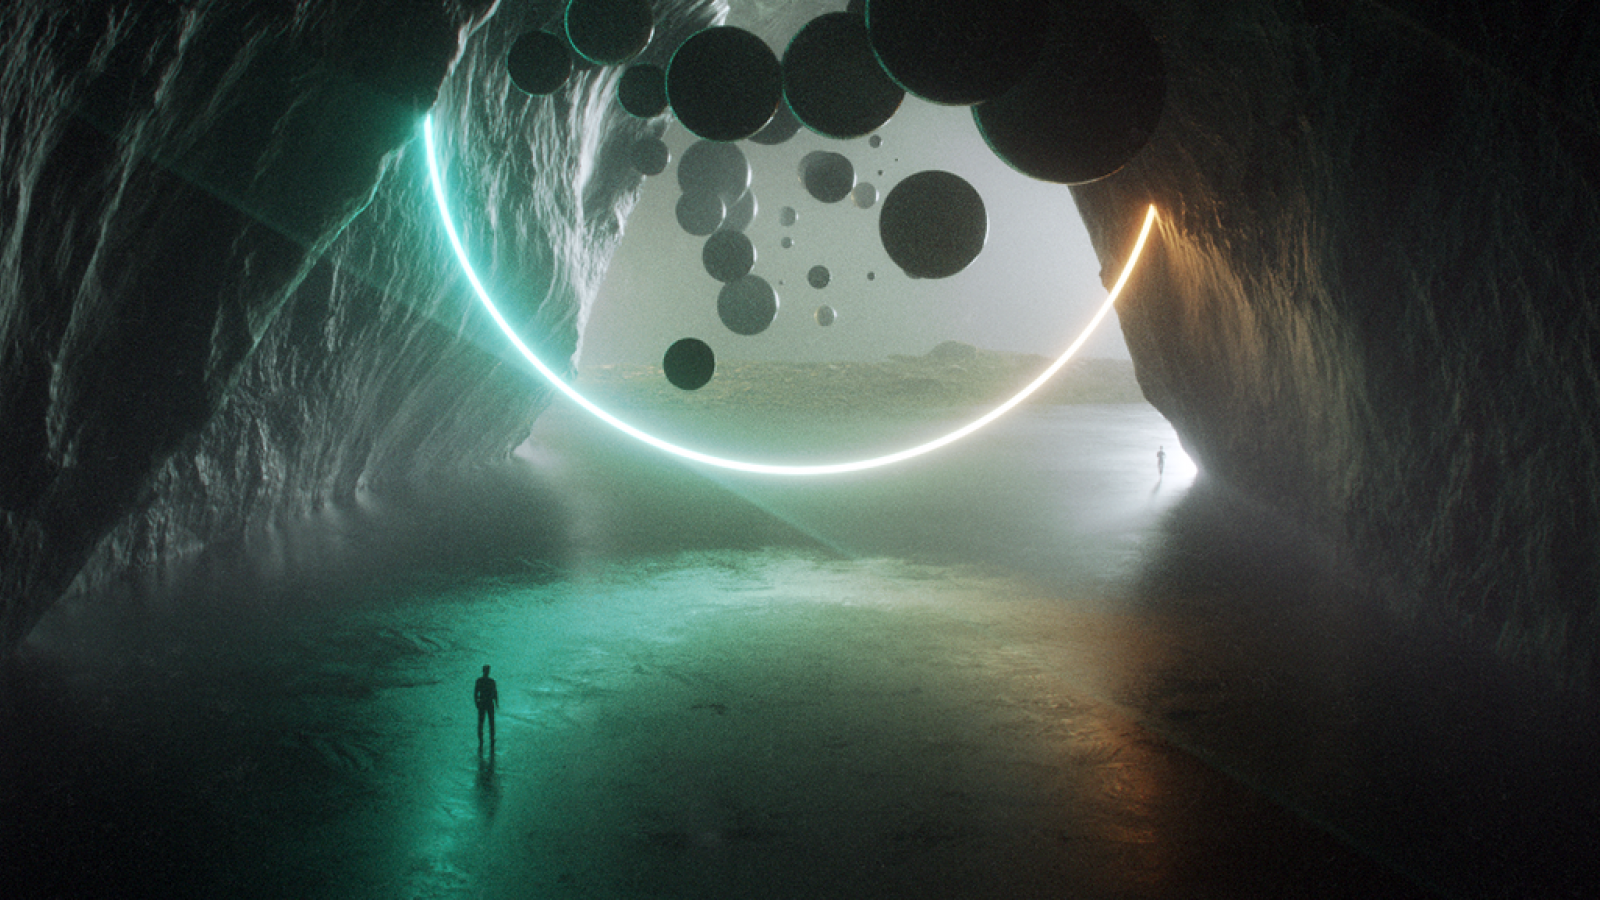 Eerie Everyday Digital Art by Stuart Lippincott